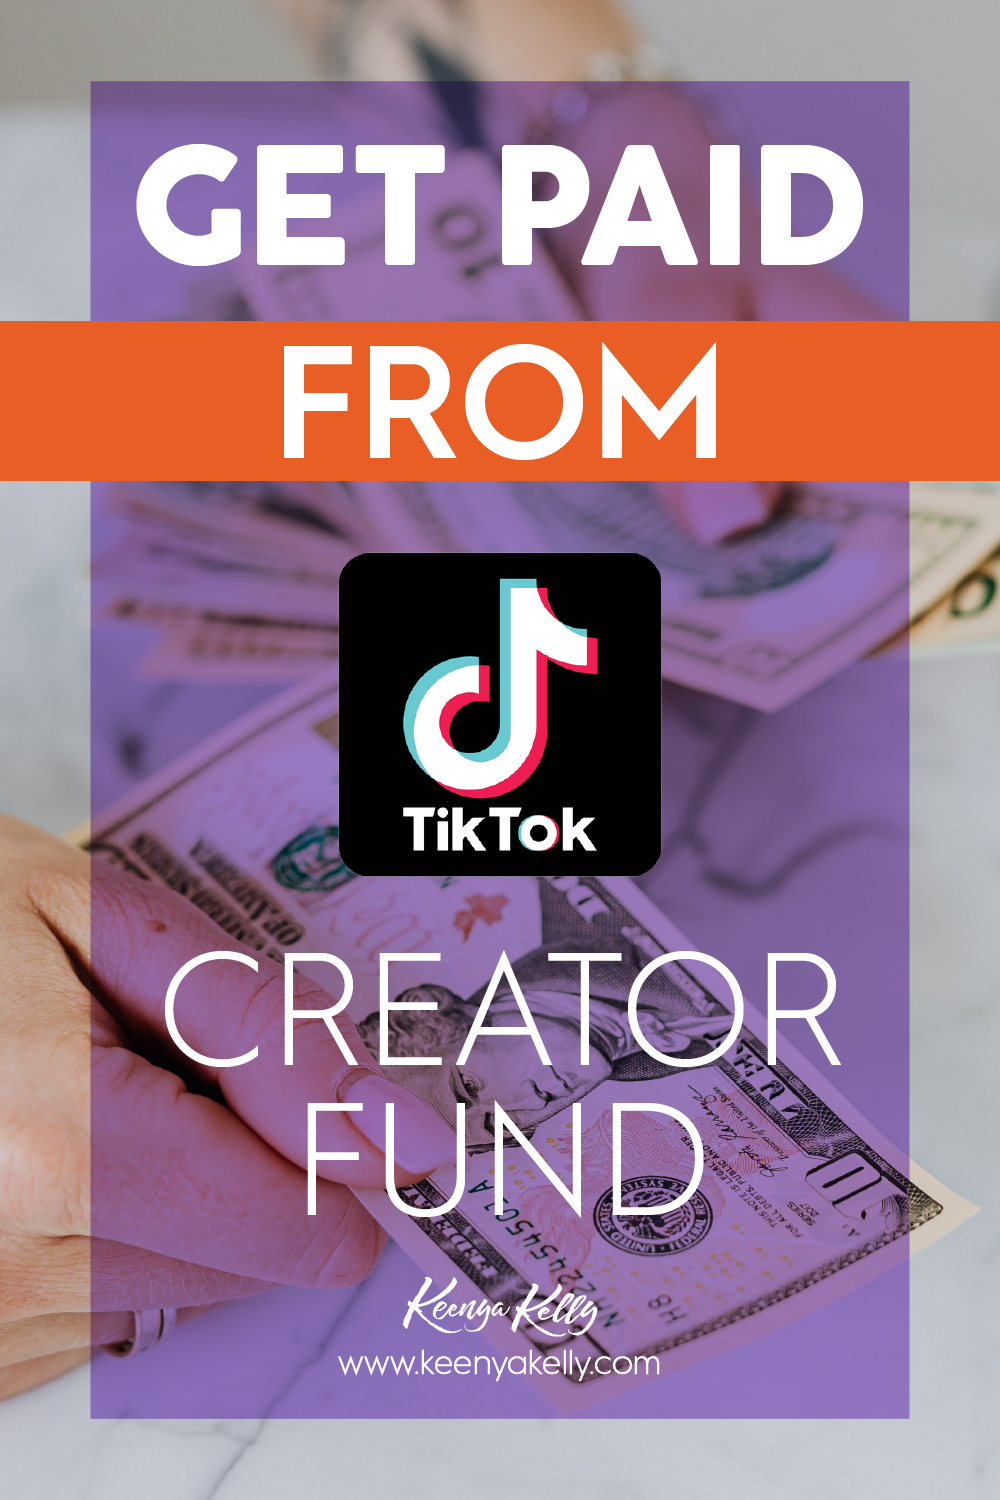 How To Get Paid From Tiktok S Creator Fund Blog Marketing Network Marketing Business Network Marketing